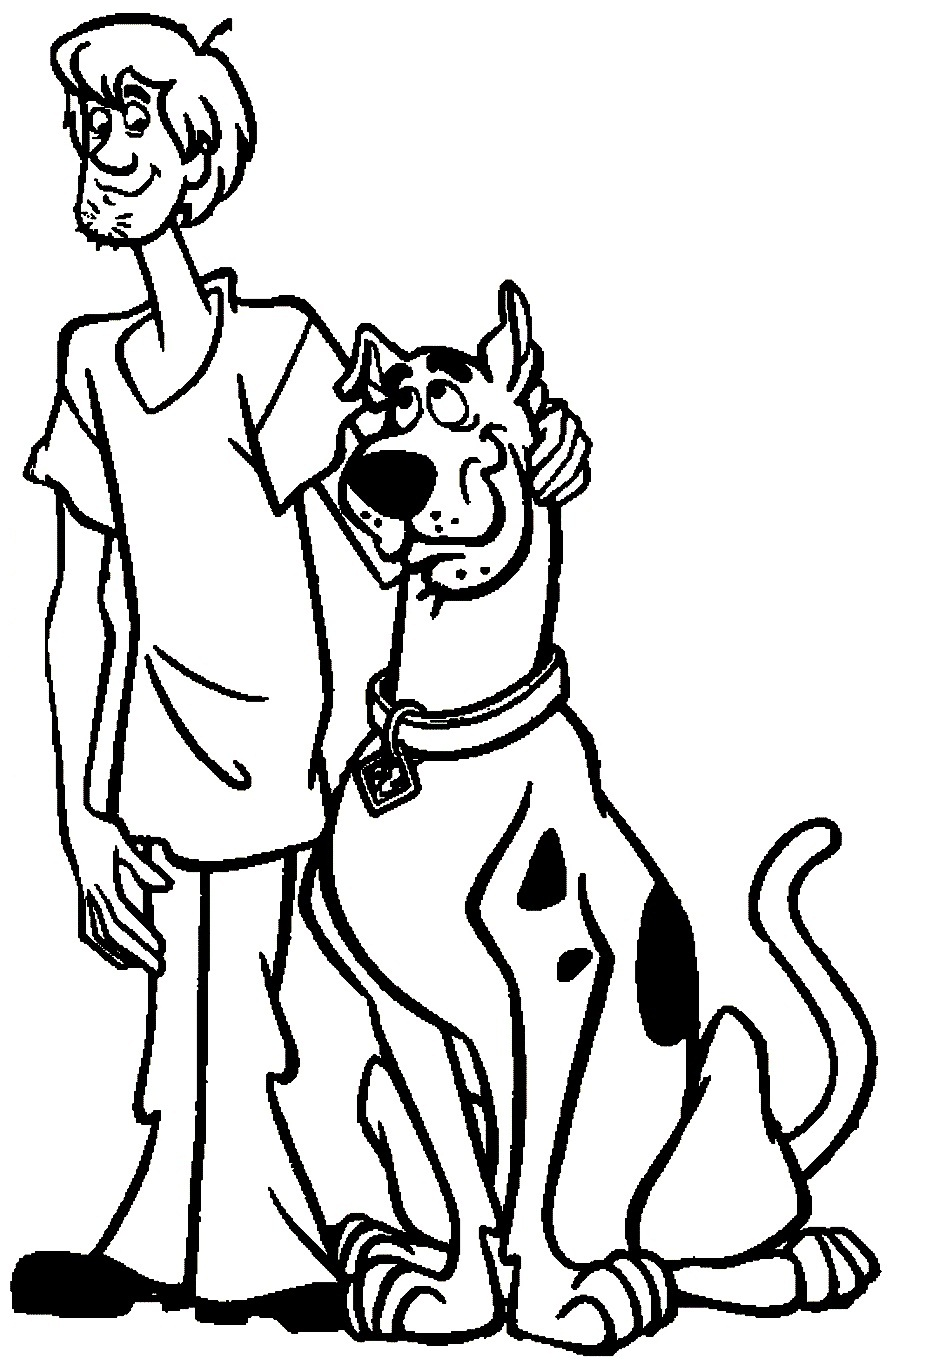 coloring pages scooby doo - Scooby Doo Coloring Pages